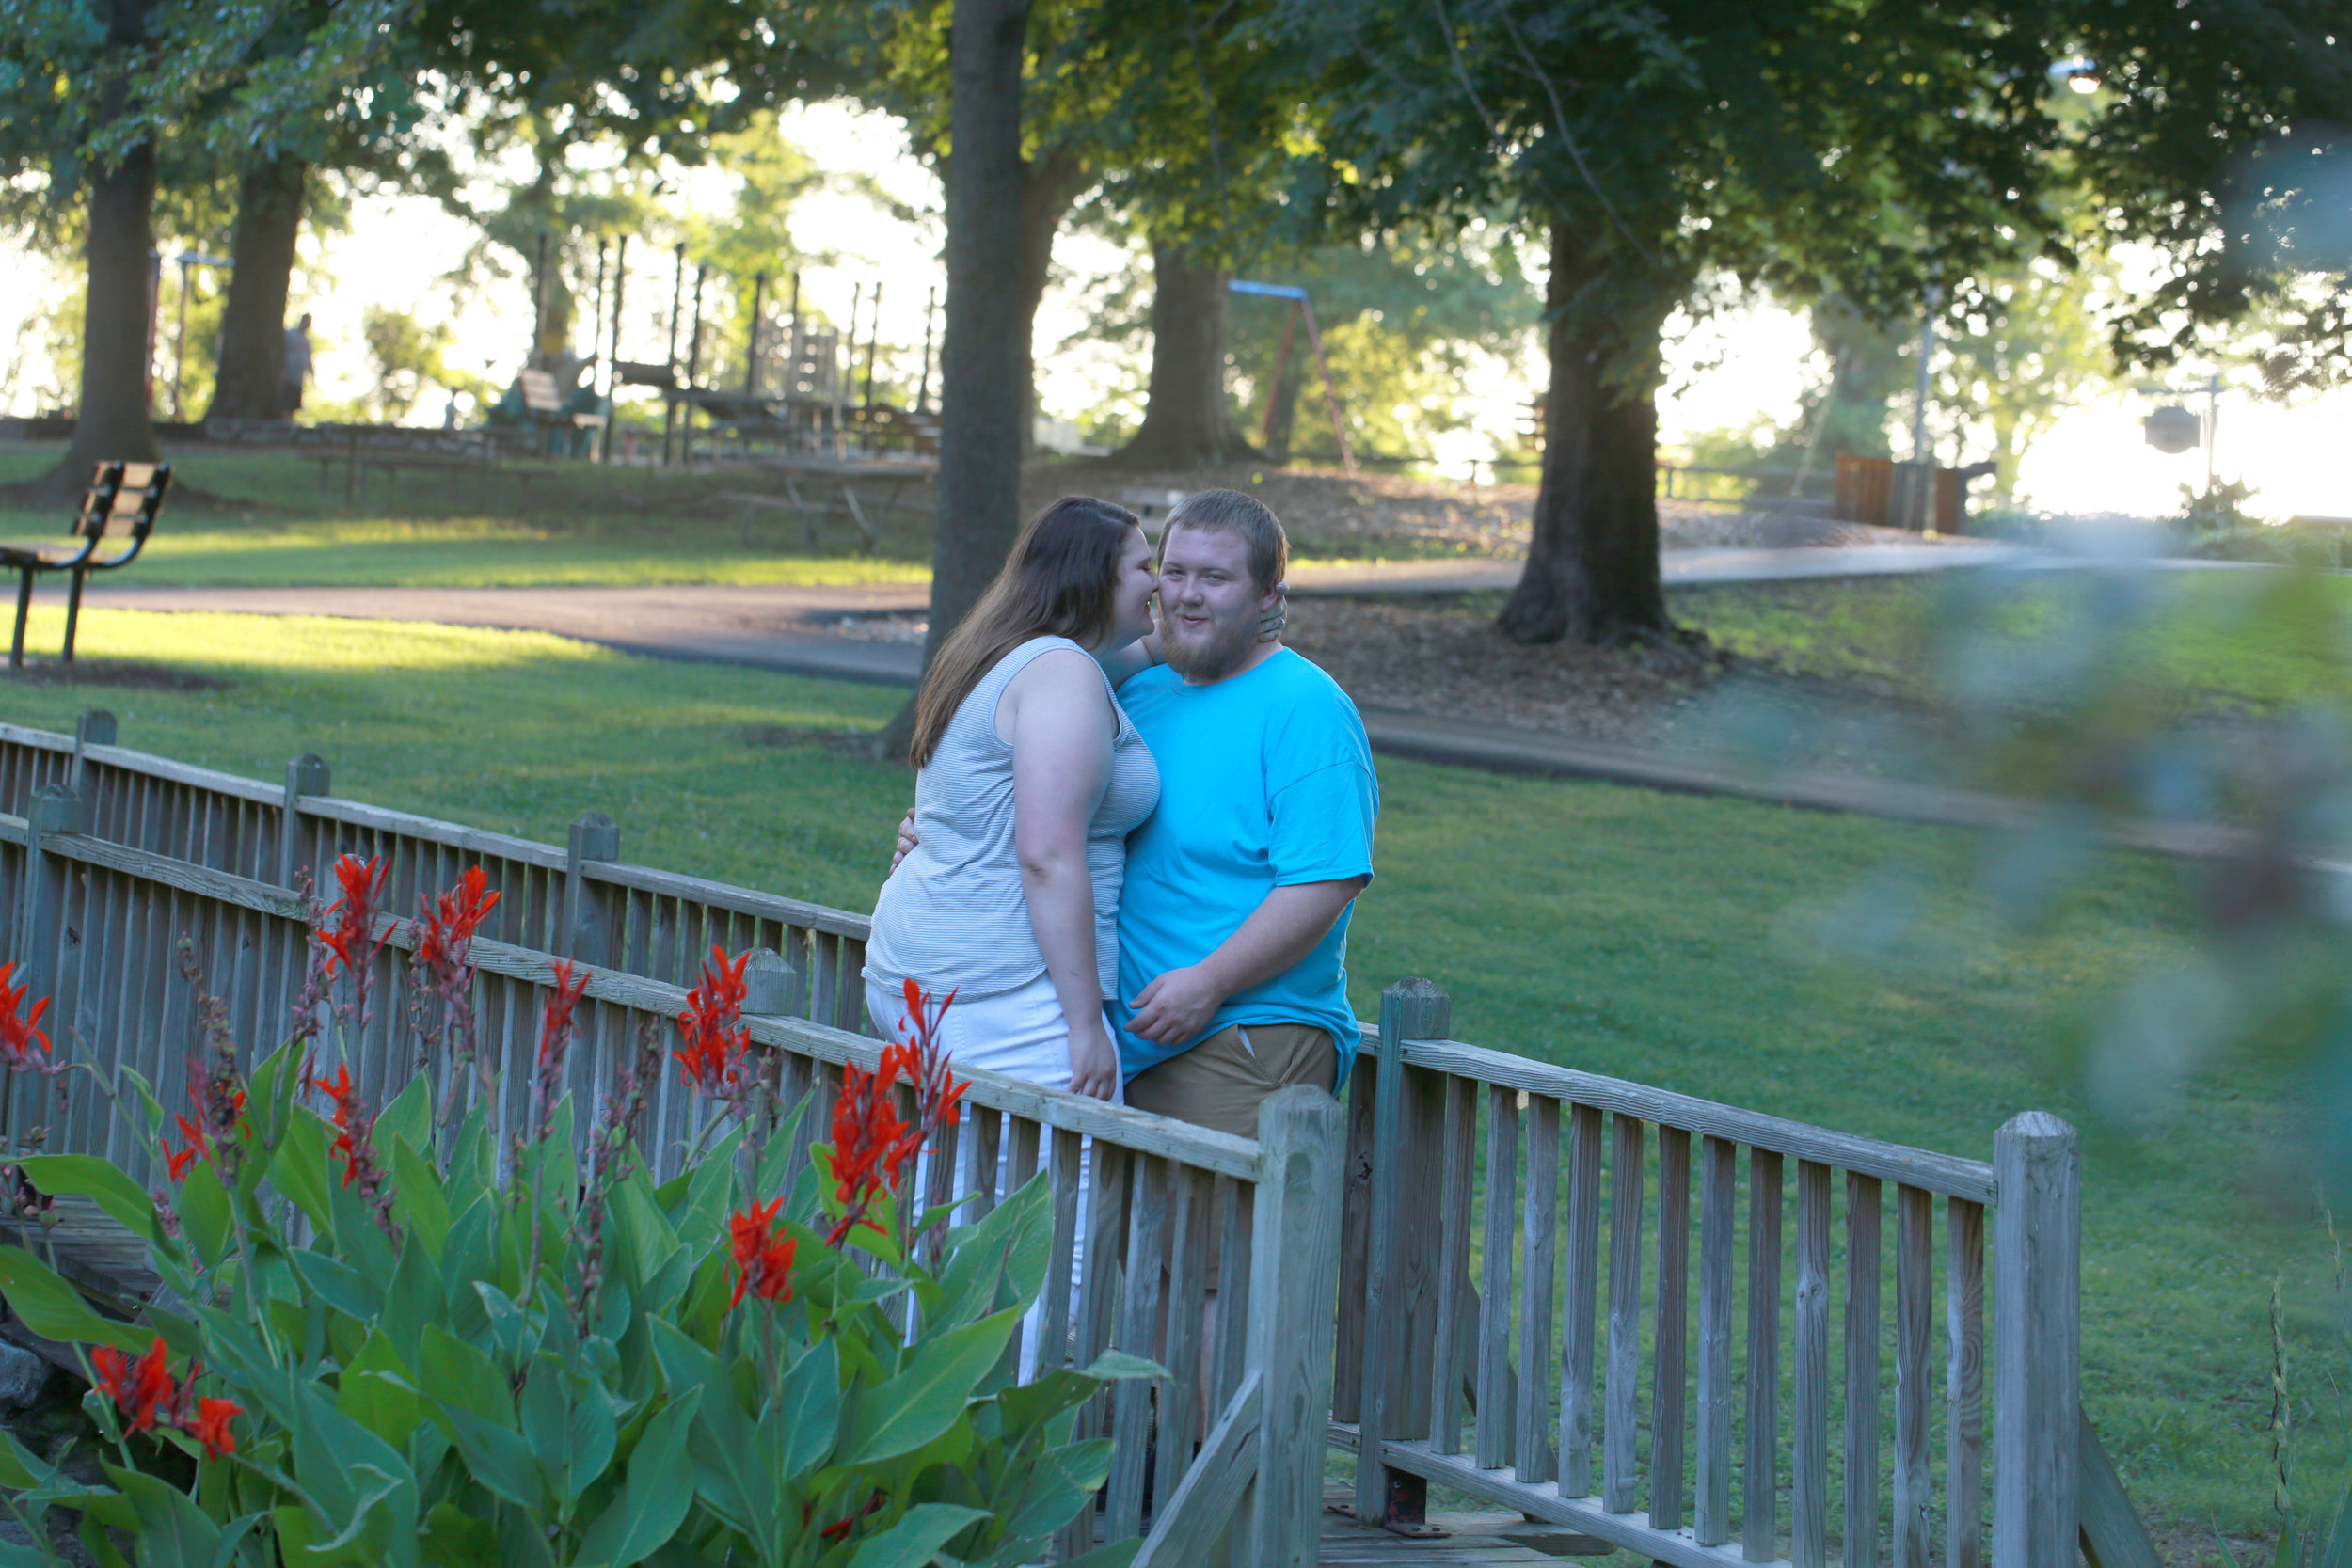 destite_jonathan_engagement_0151.jpg